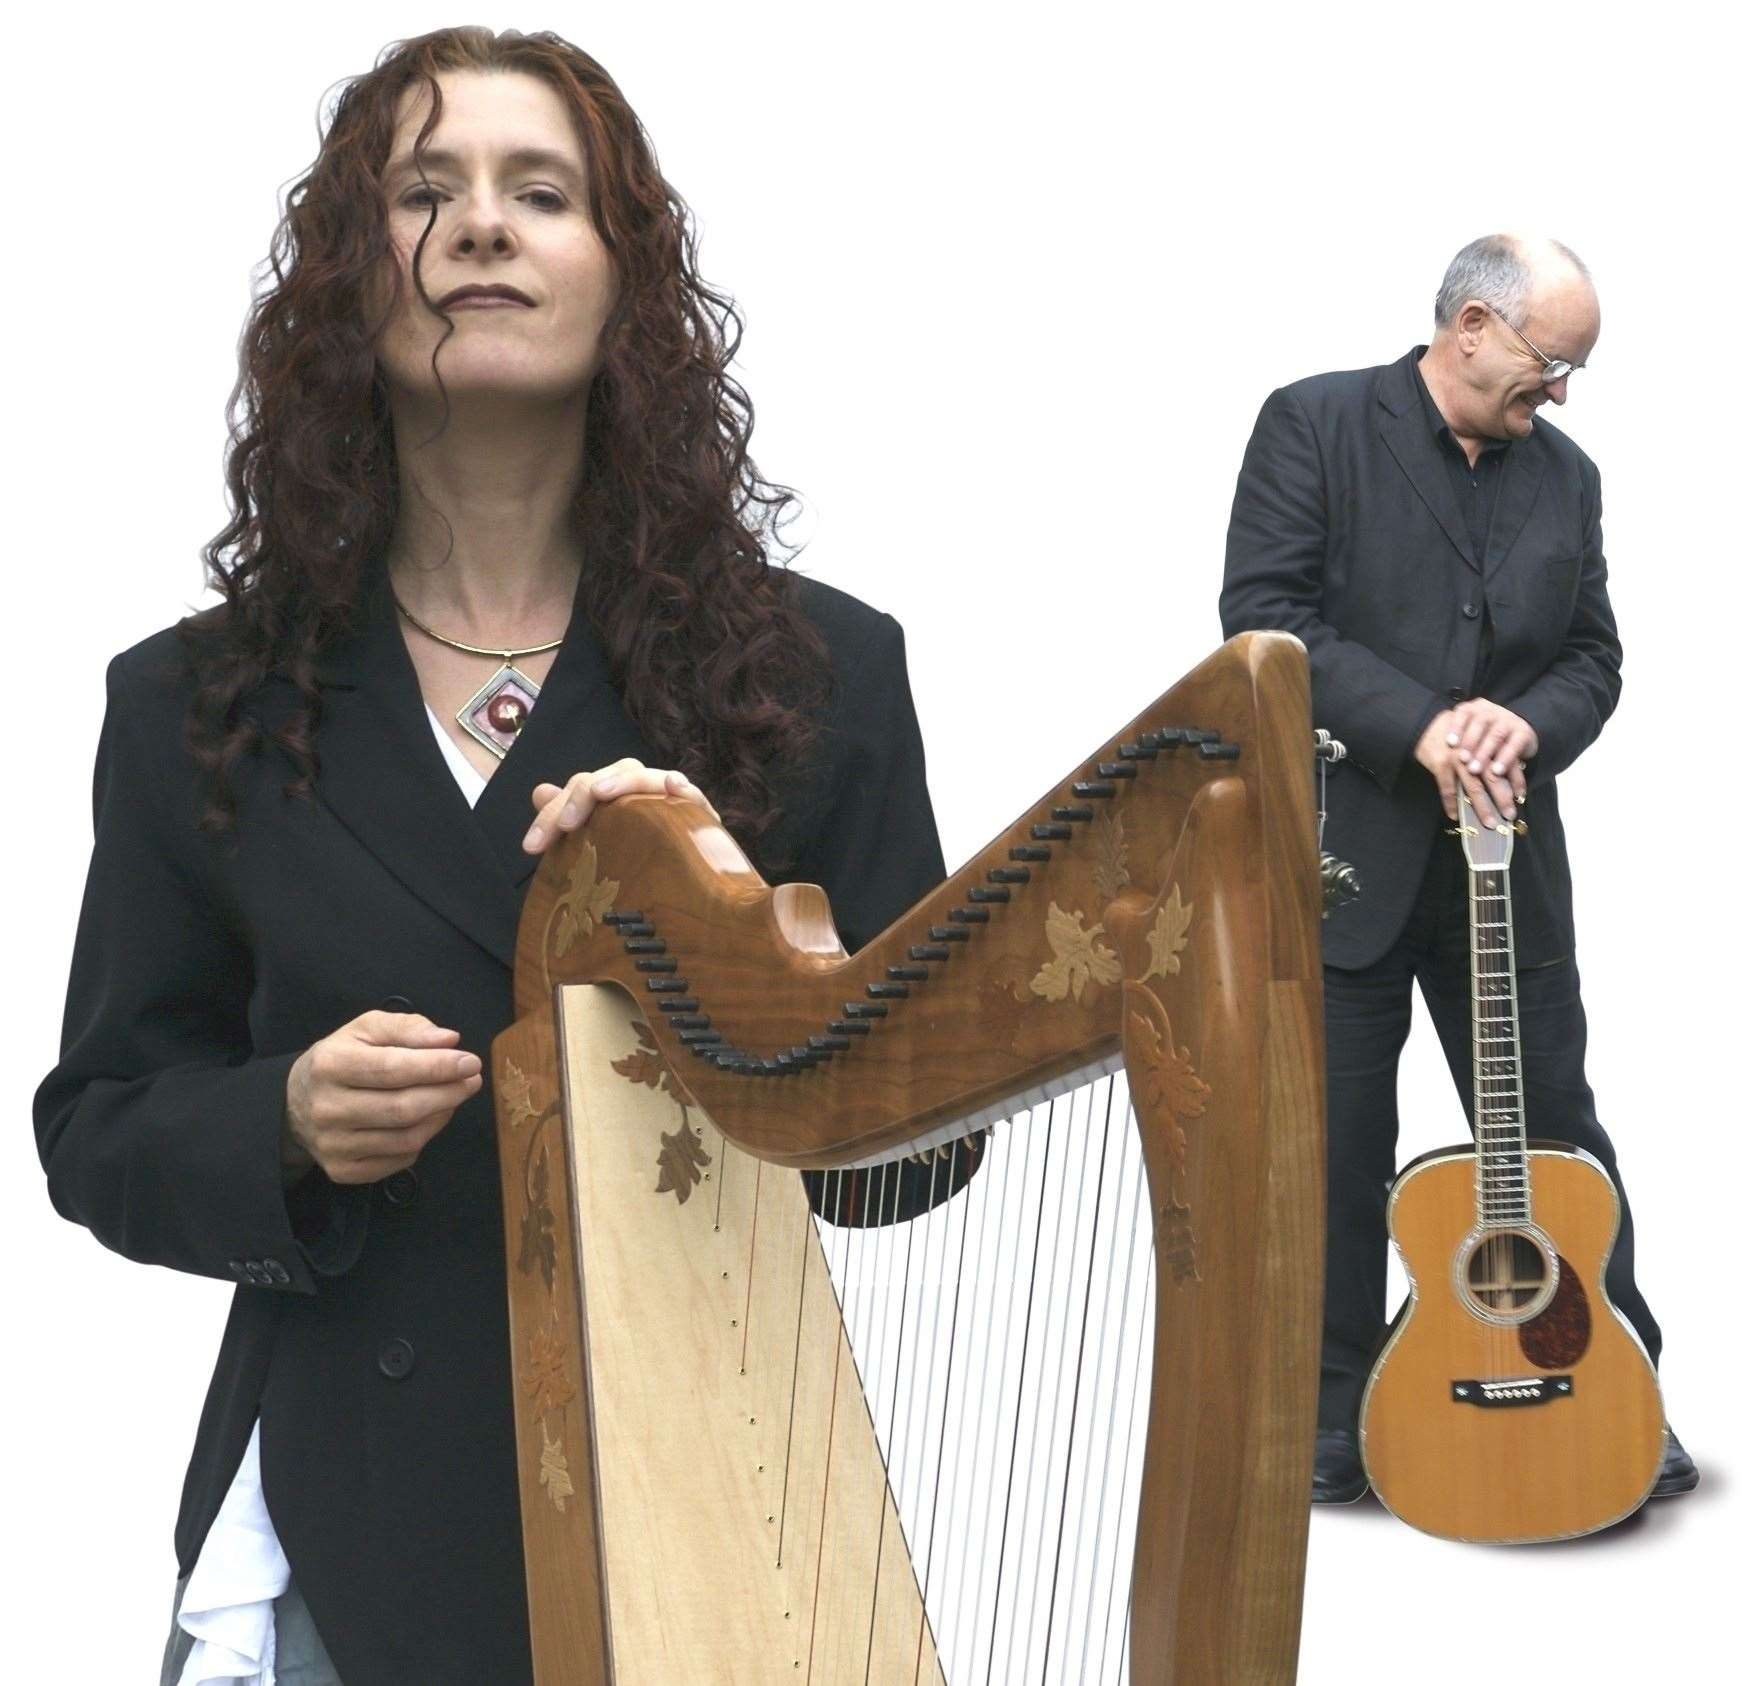 Maire Ni Chathasaigh and Chris Newman perform at the Market House in Long Sutton on Wednesday. Photo by Simon Mayor.